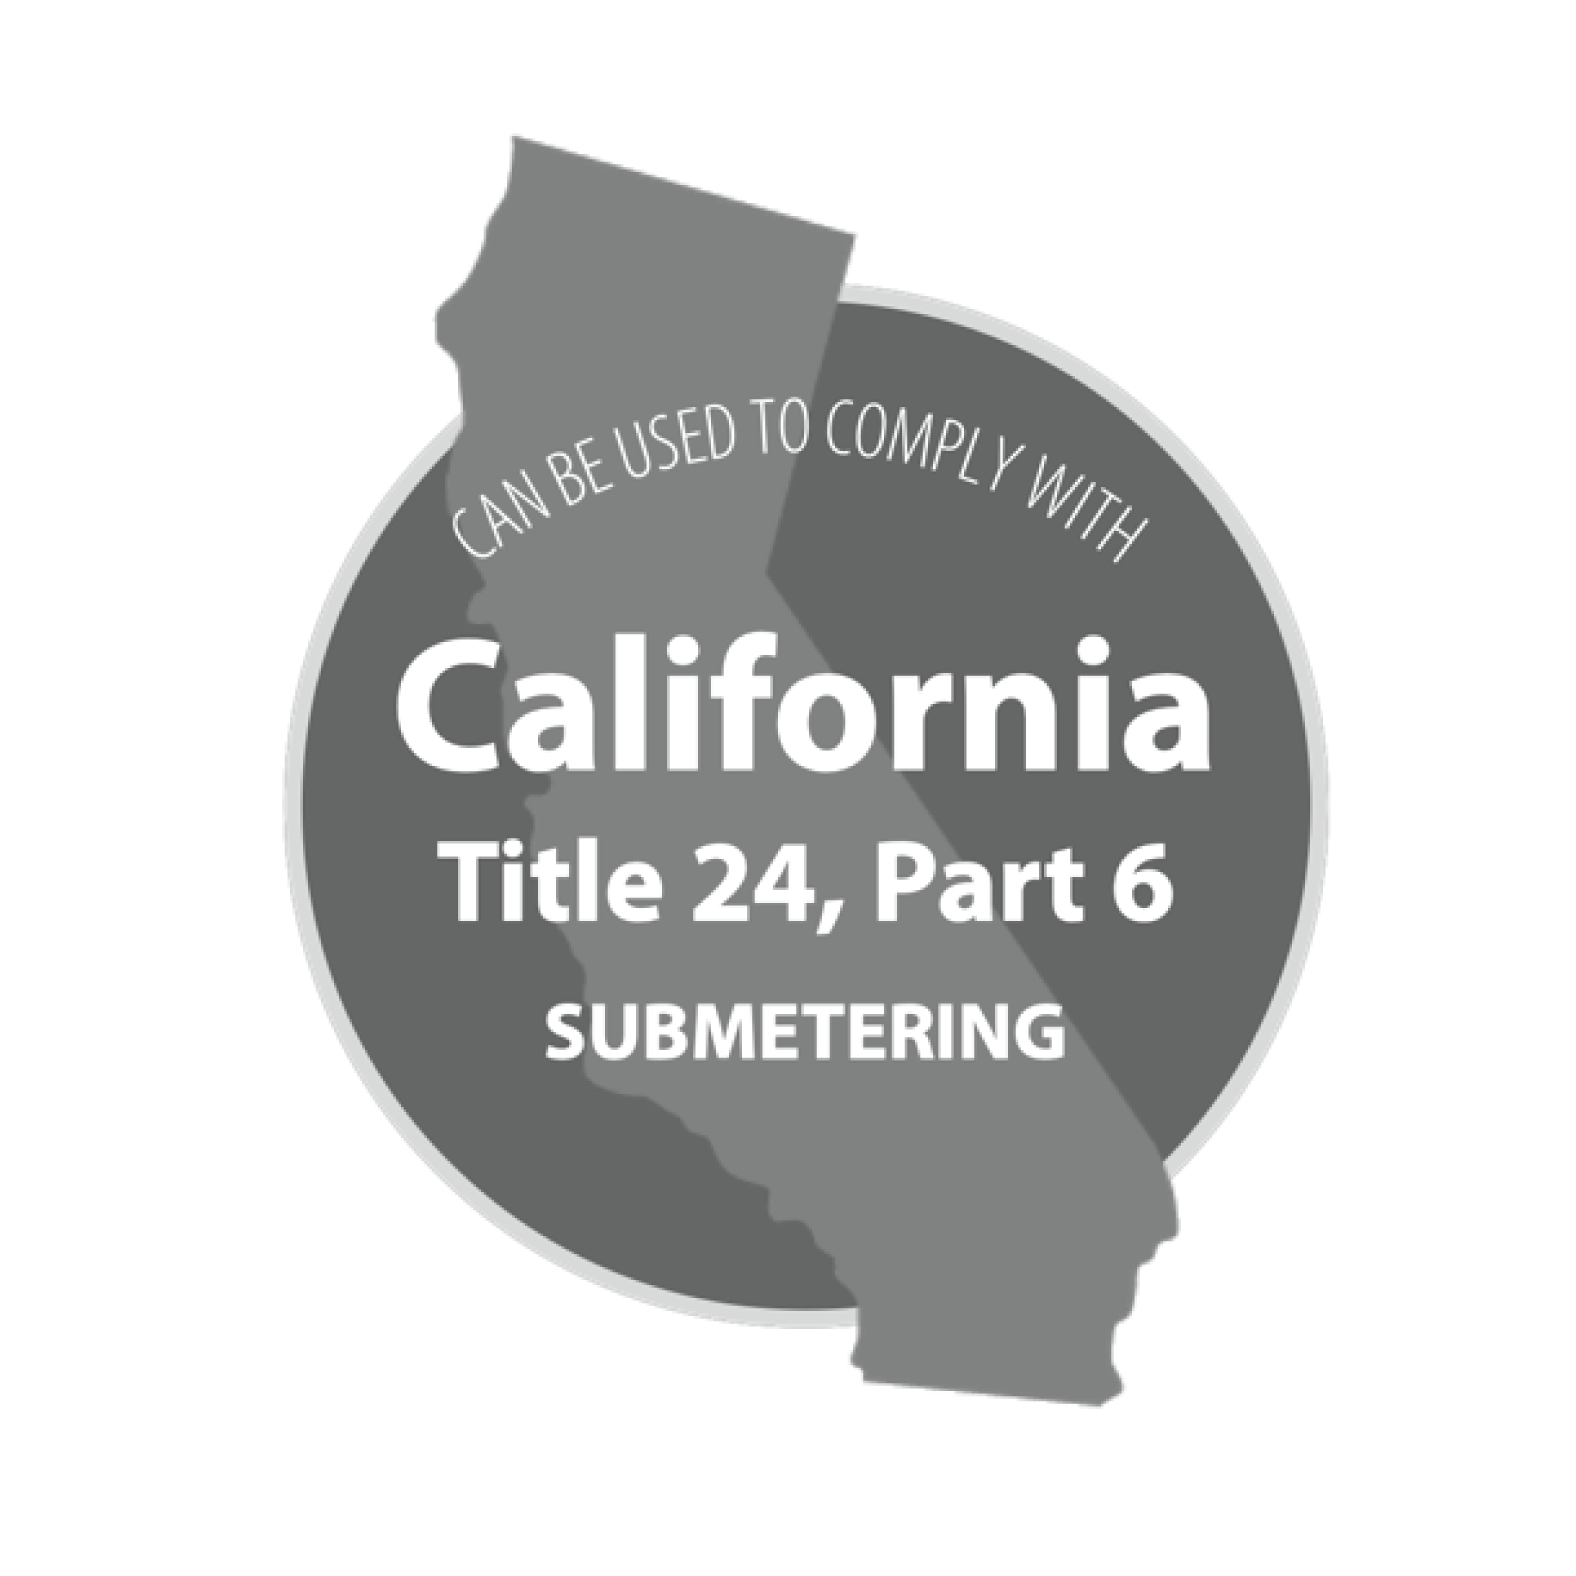 Approved Electrical Meter Listing on California Department of Food and Agriculture Web Site